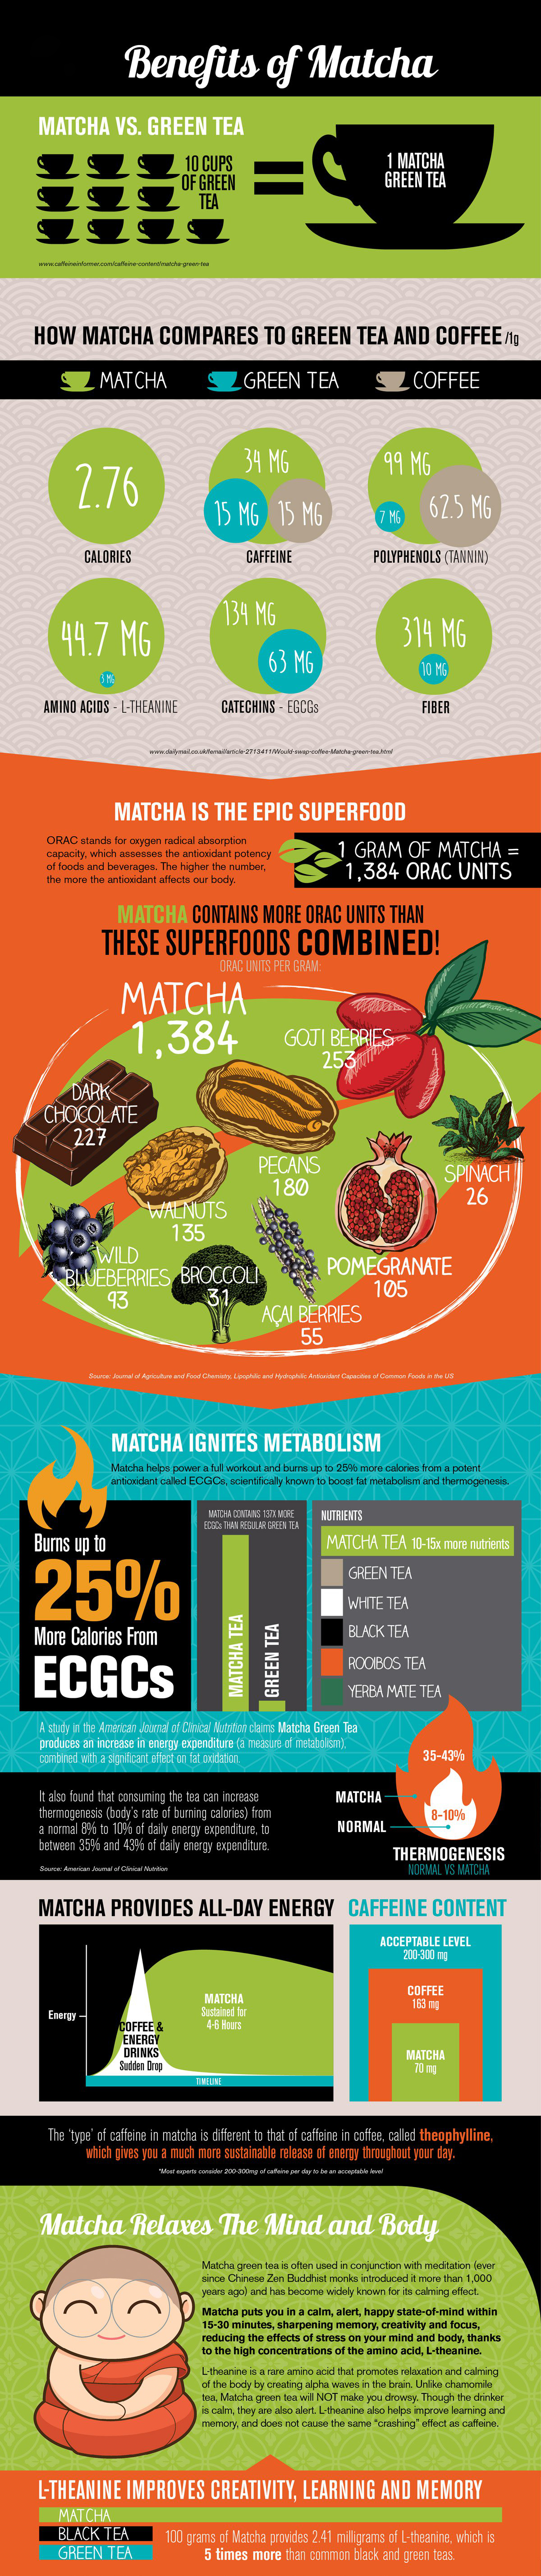 matcha-benefits-infographic.jpg